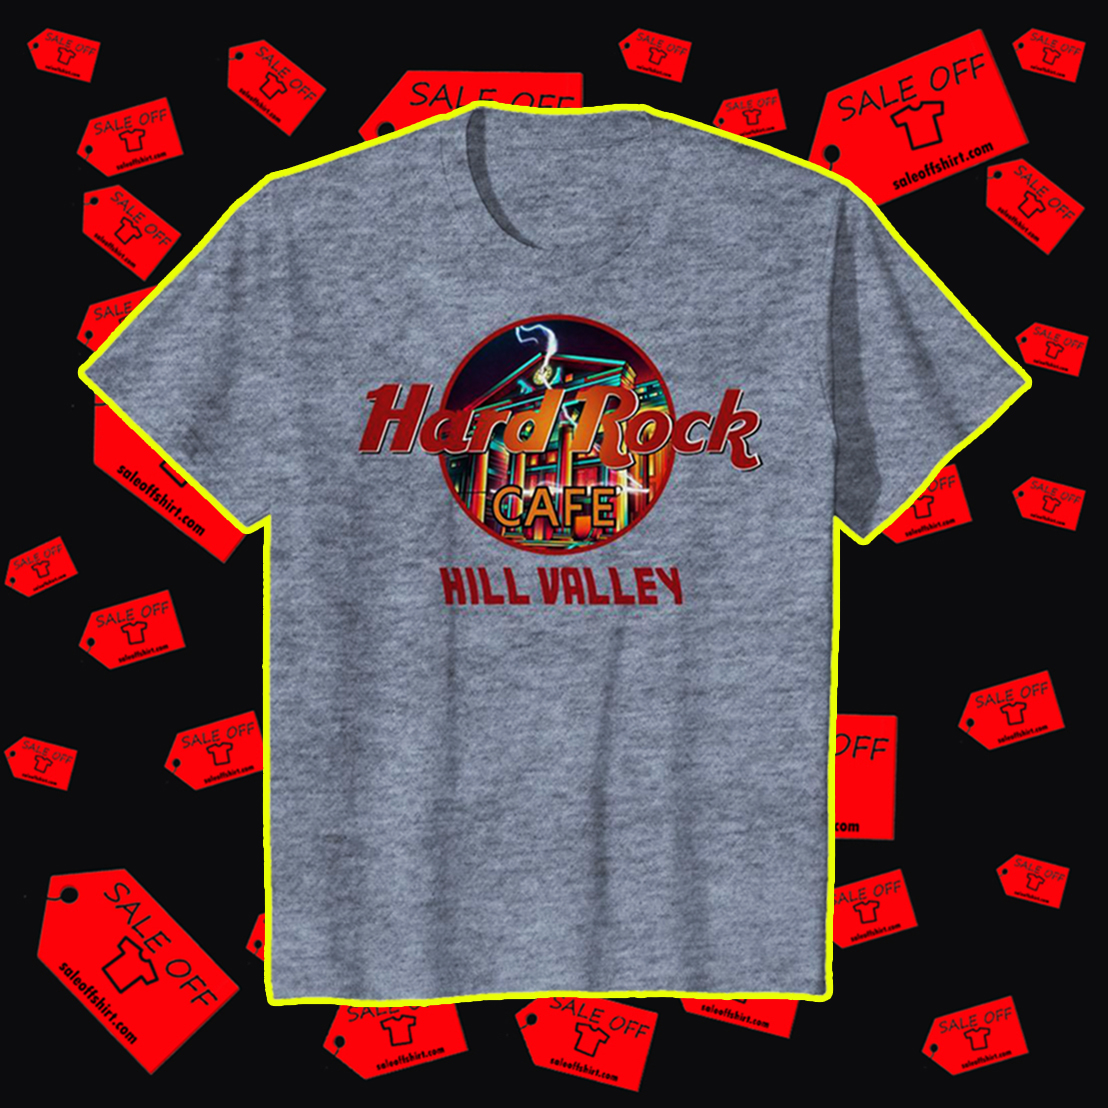 Hard Rock cafe Hill Valley youth tee